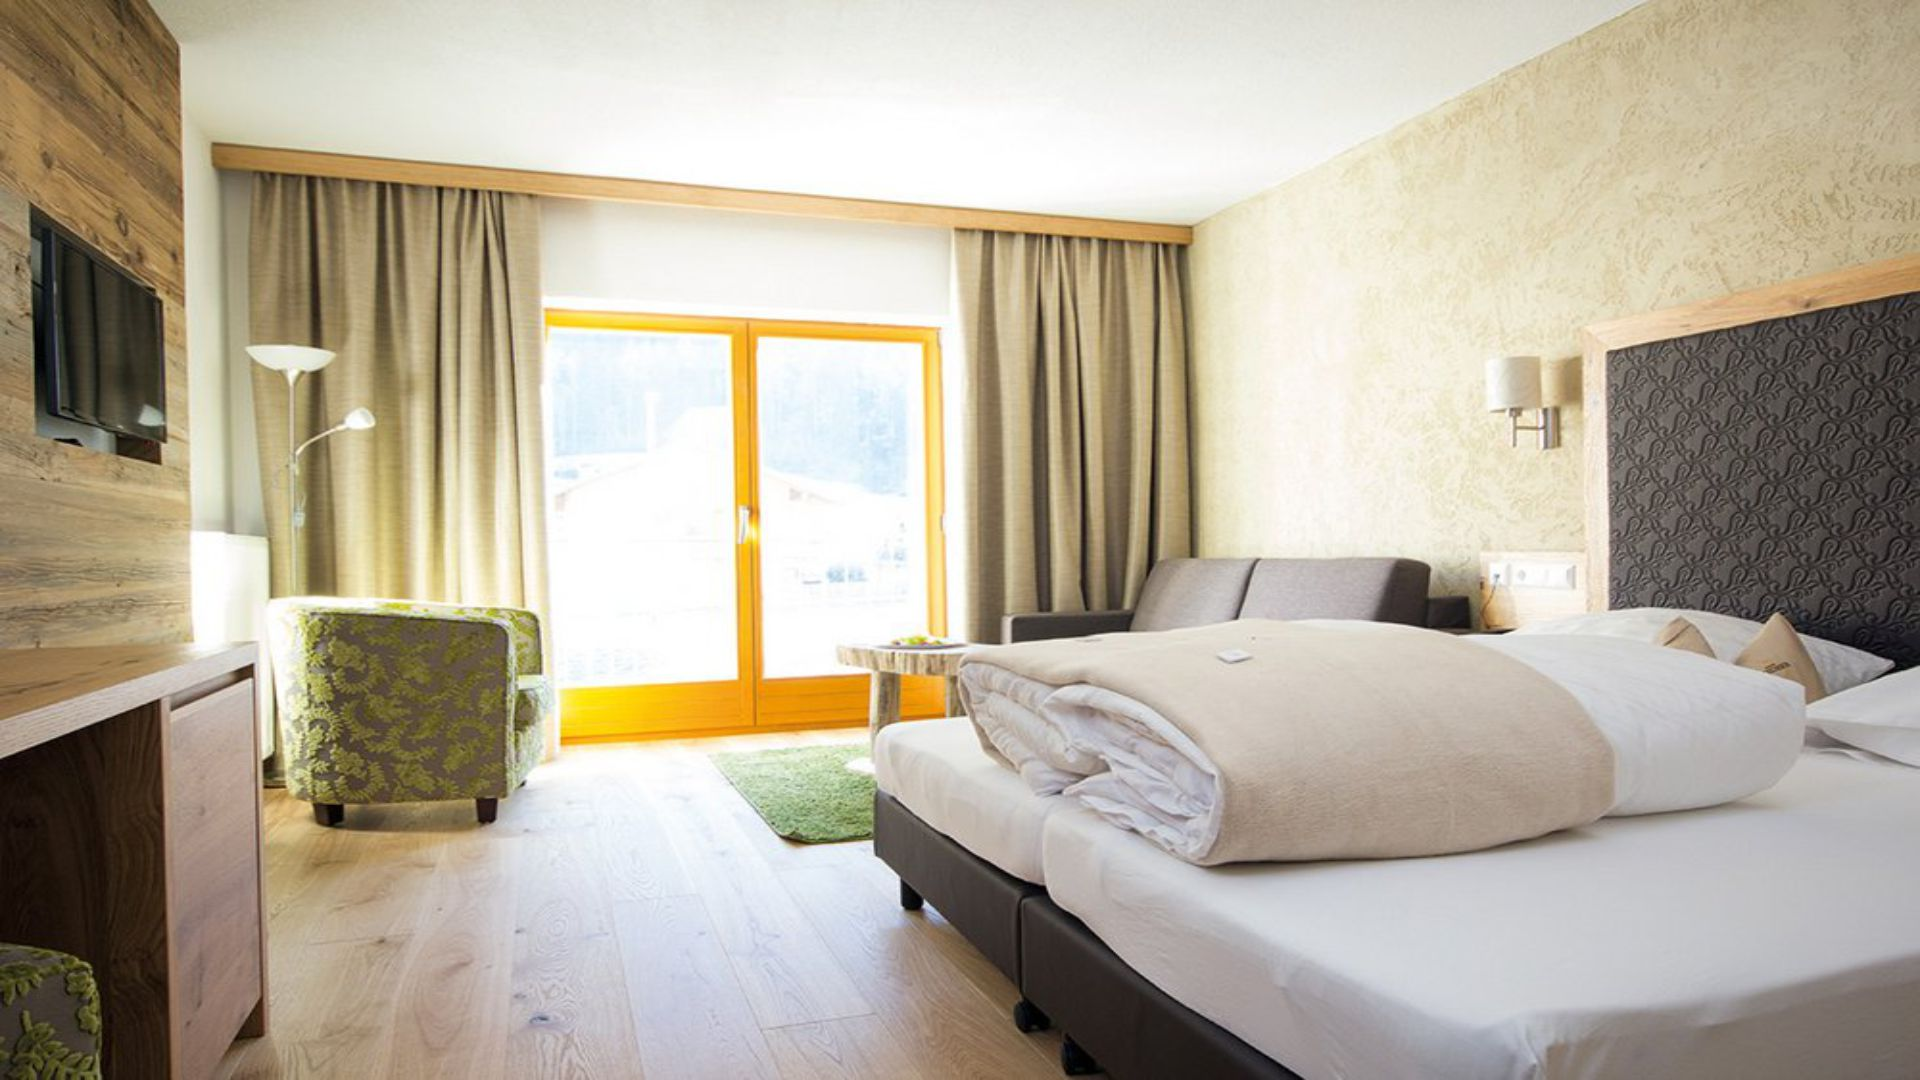 Hotel Belvedere Hotelzimmer Projects Hundhammer